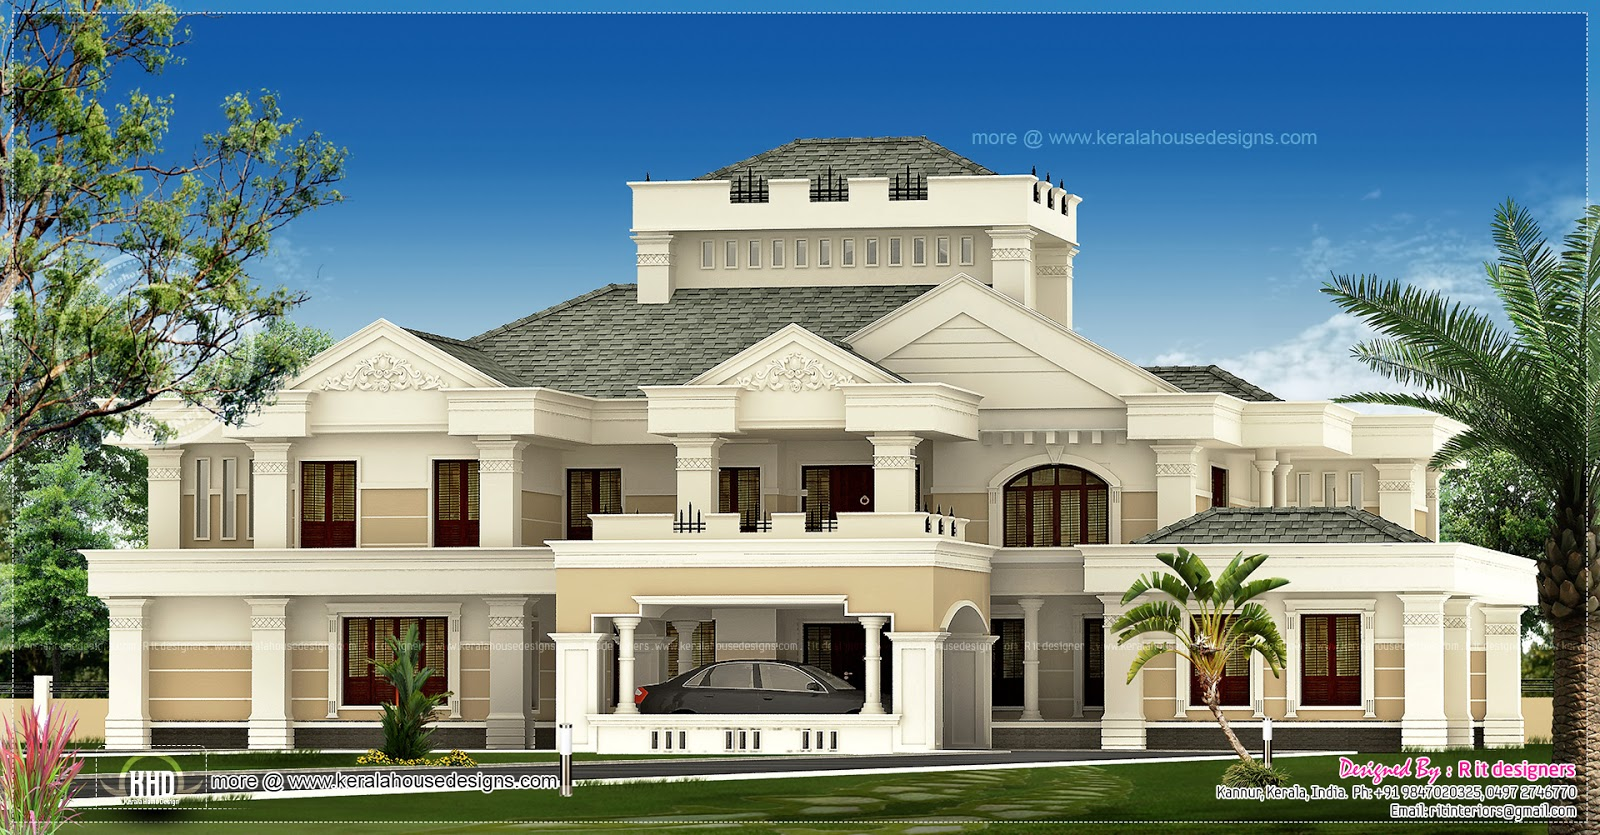 Super luxury kerala house exterior house design plans for Luxury home designers